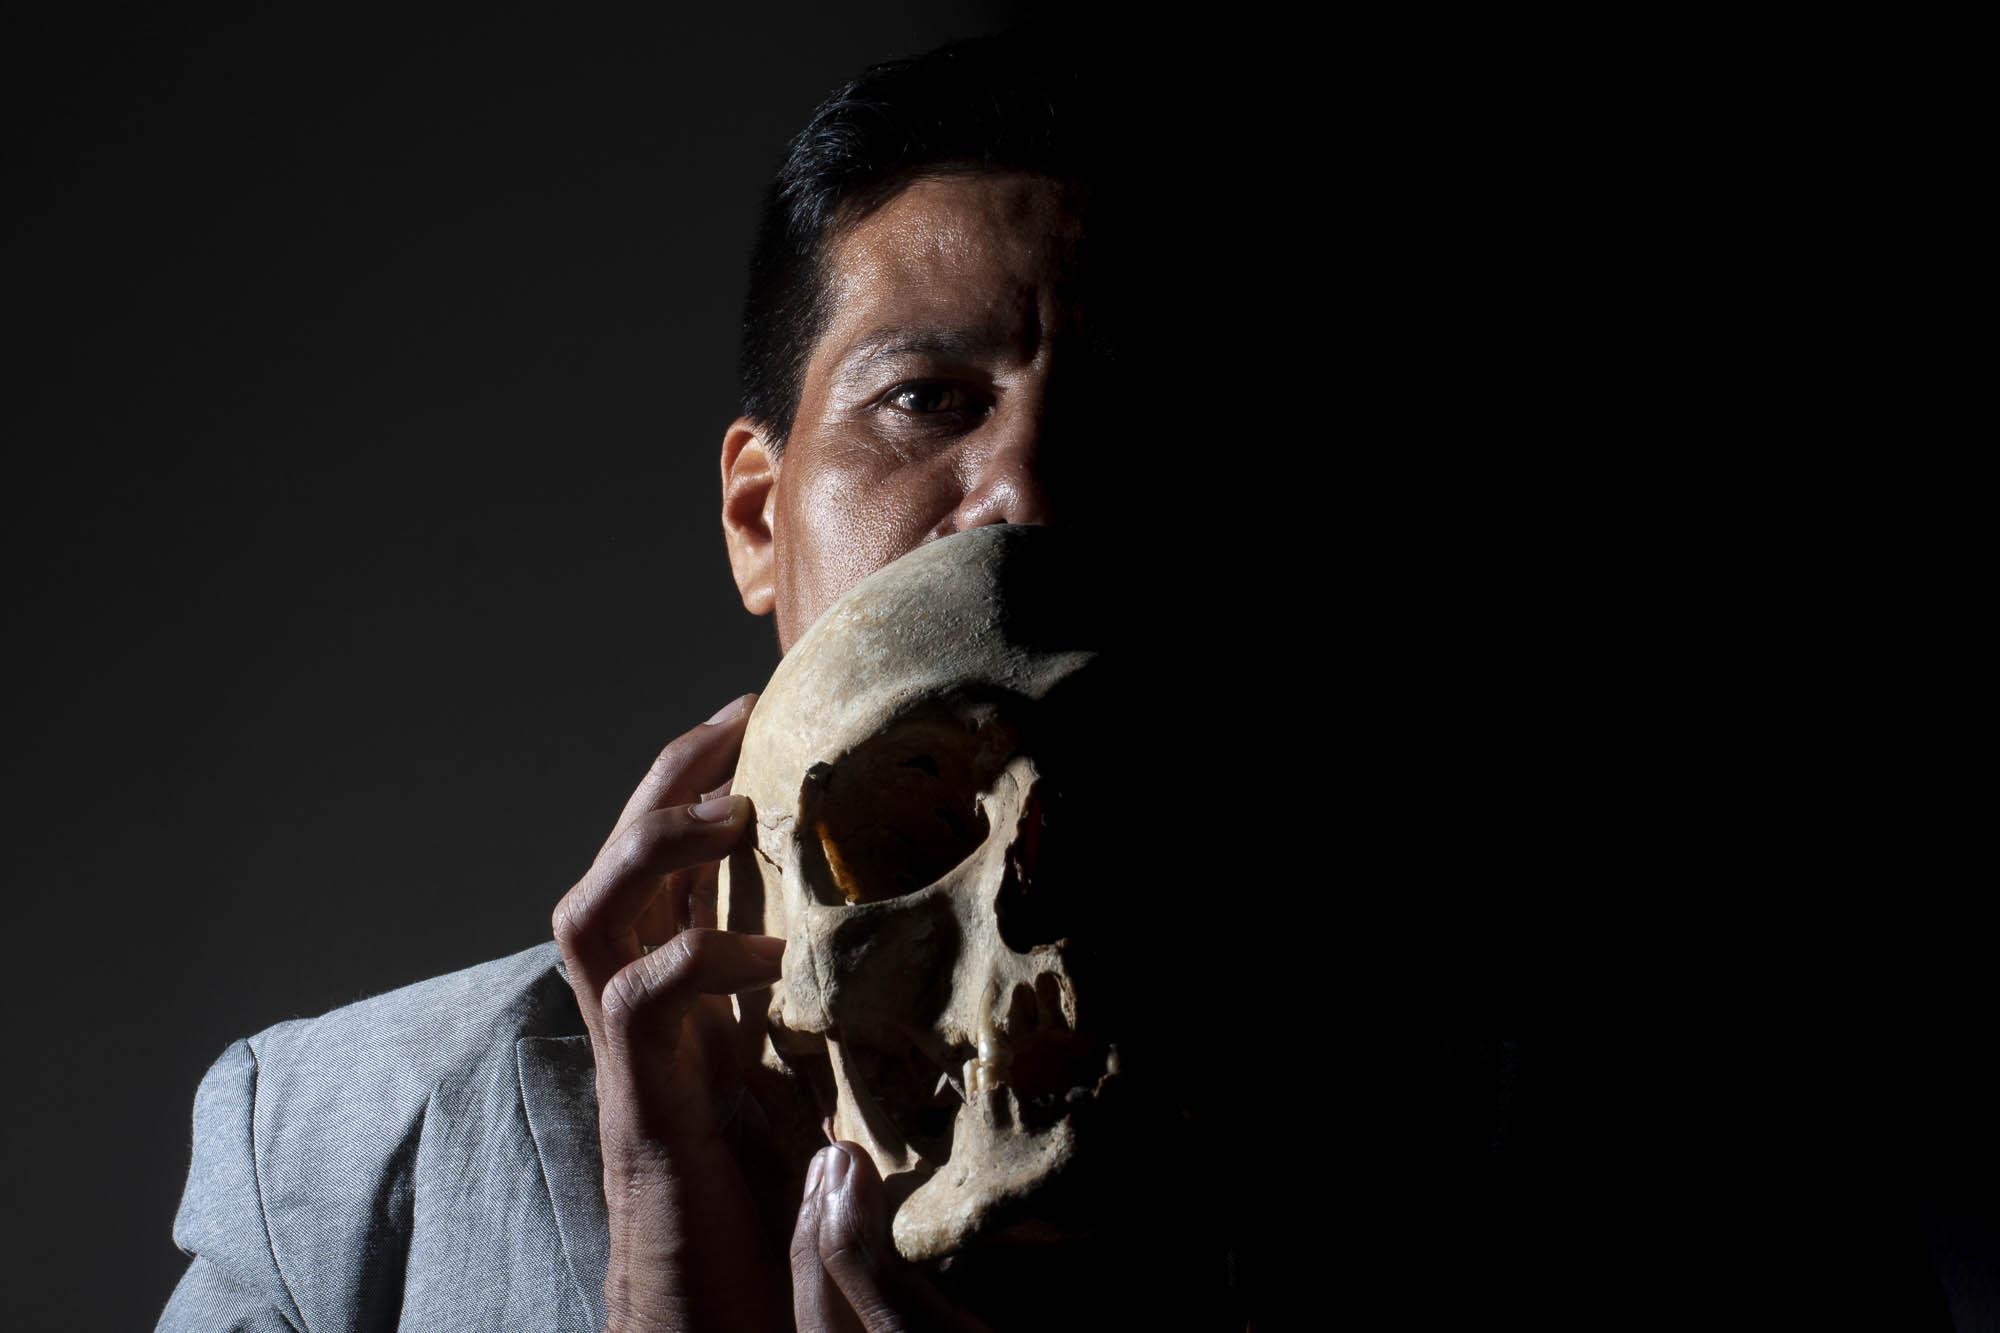 Israel poses for a portrait. He uses a human skull to conceal his identity.